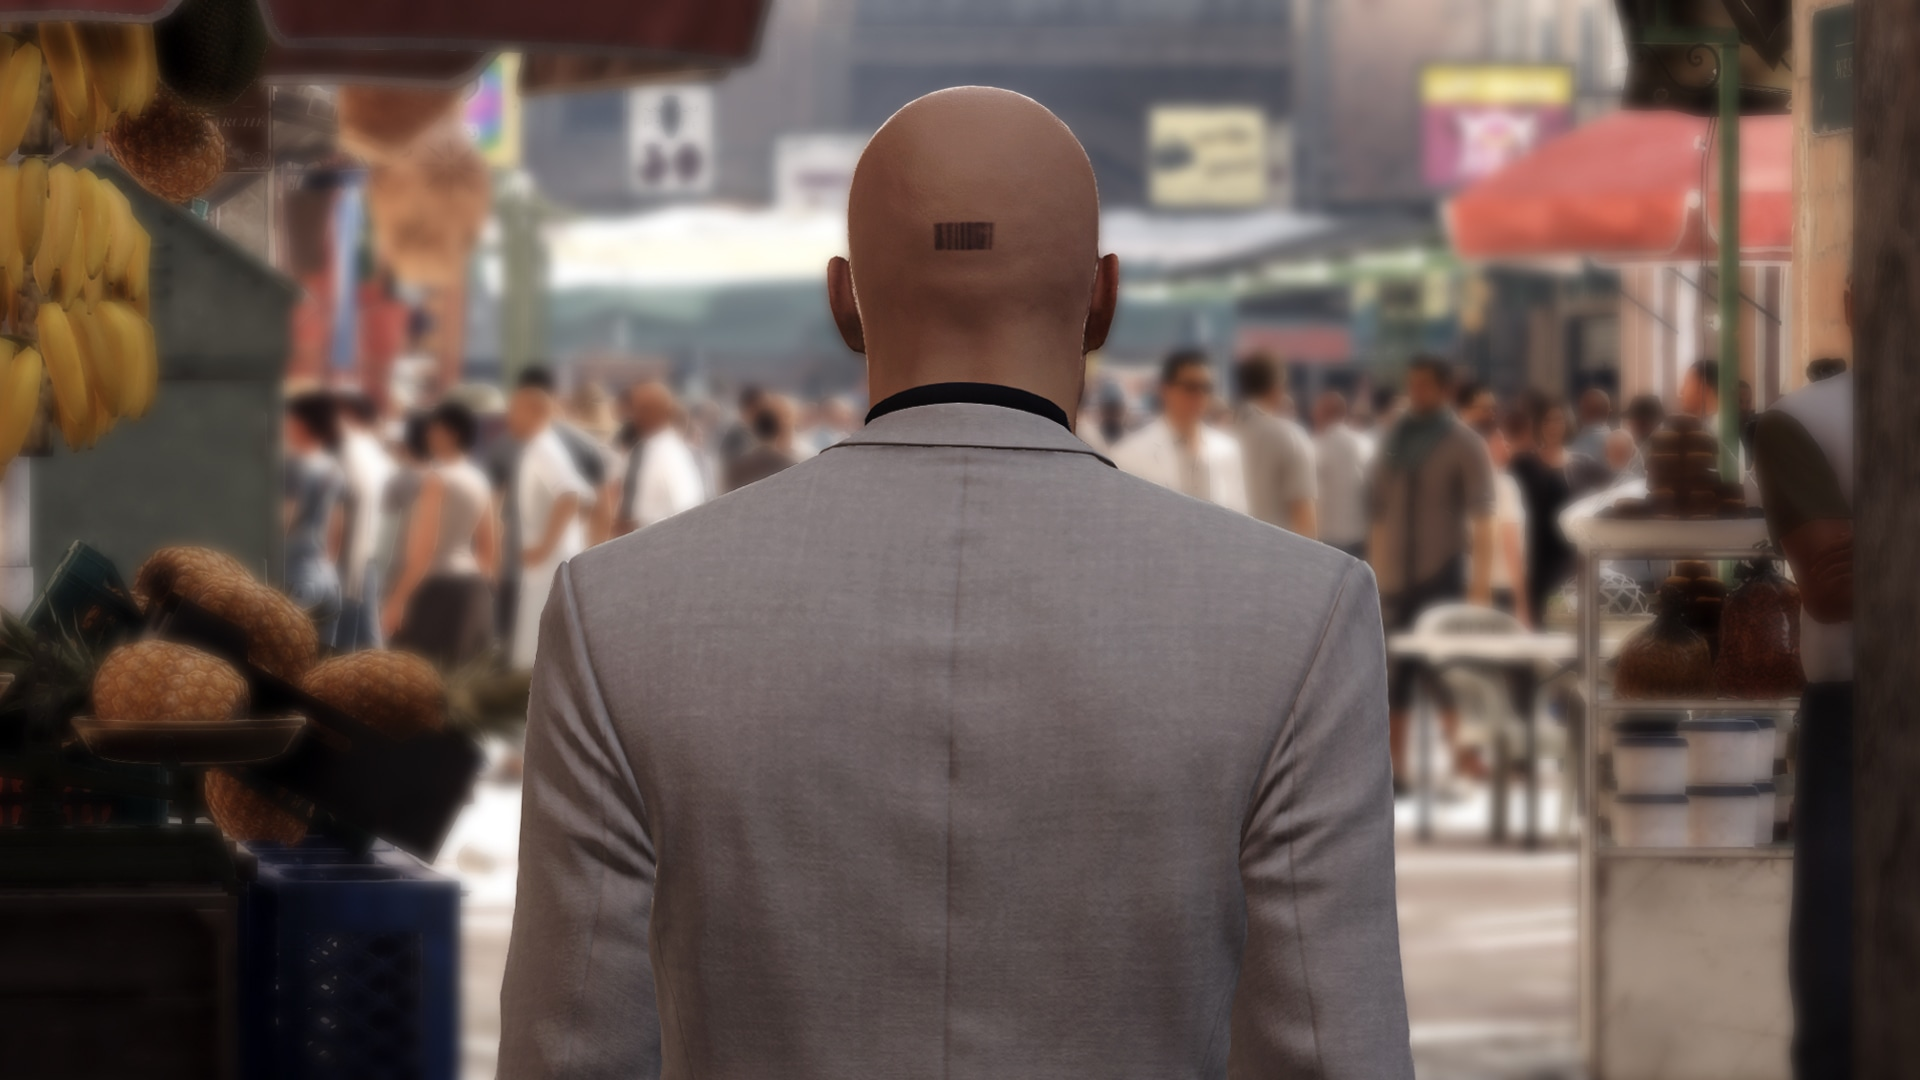 hitman-screenshot-marrakesh-47-26-1464257194052016_87j8